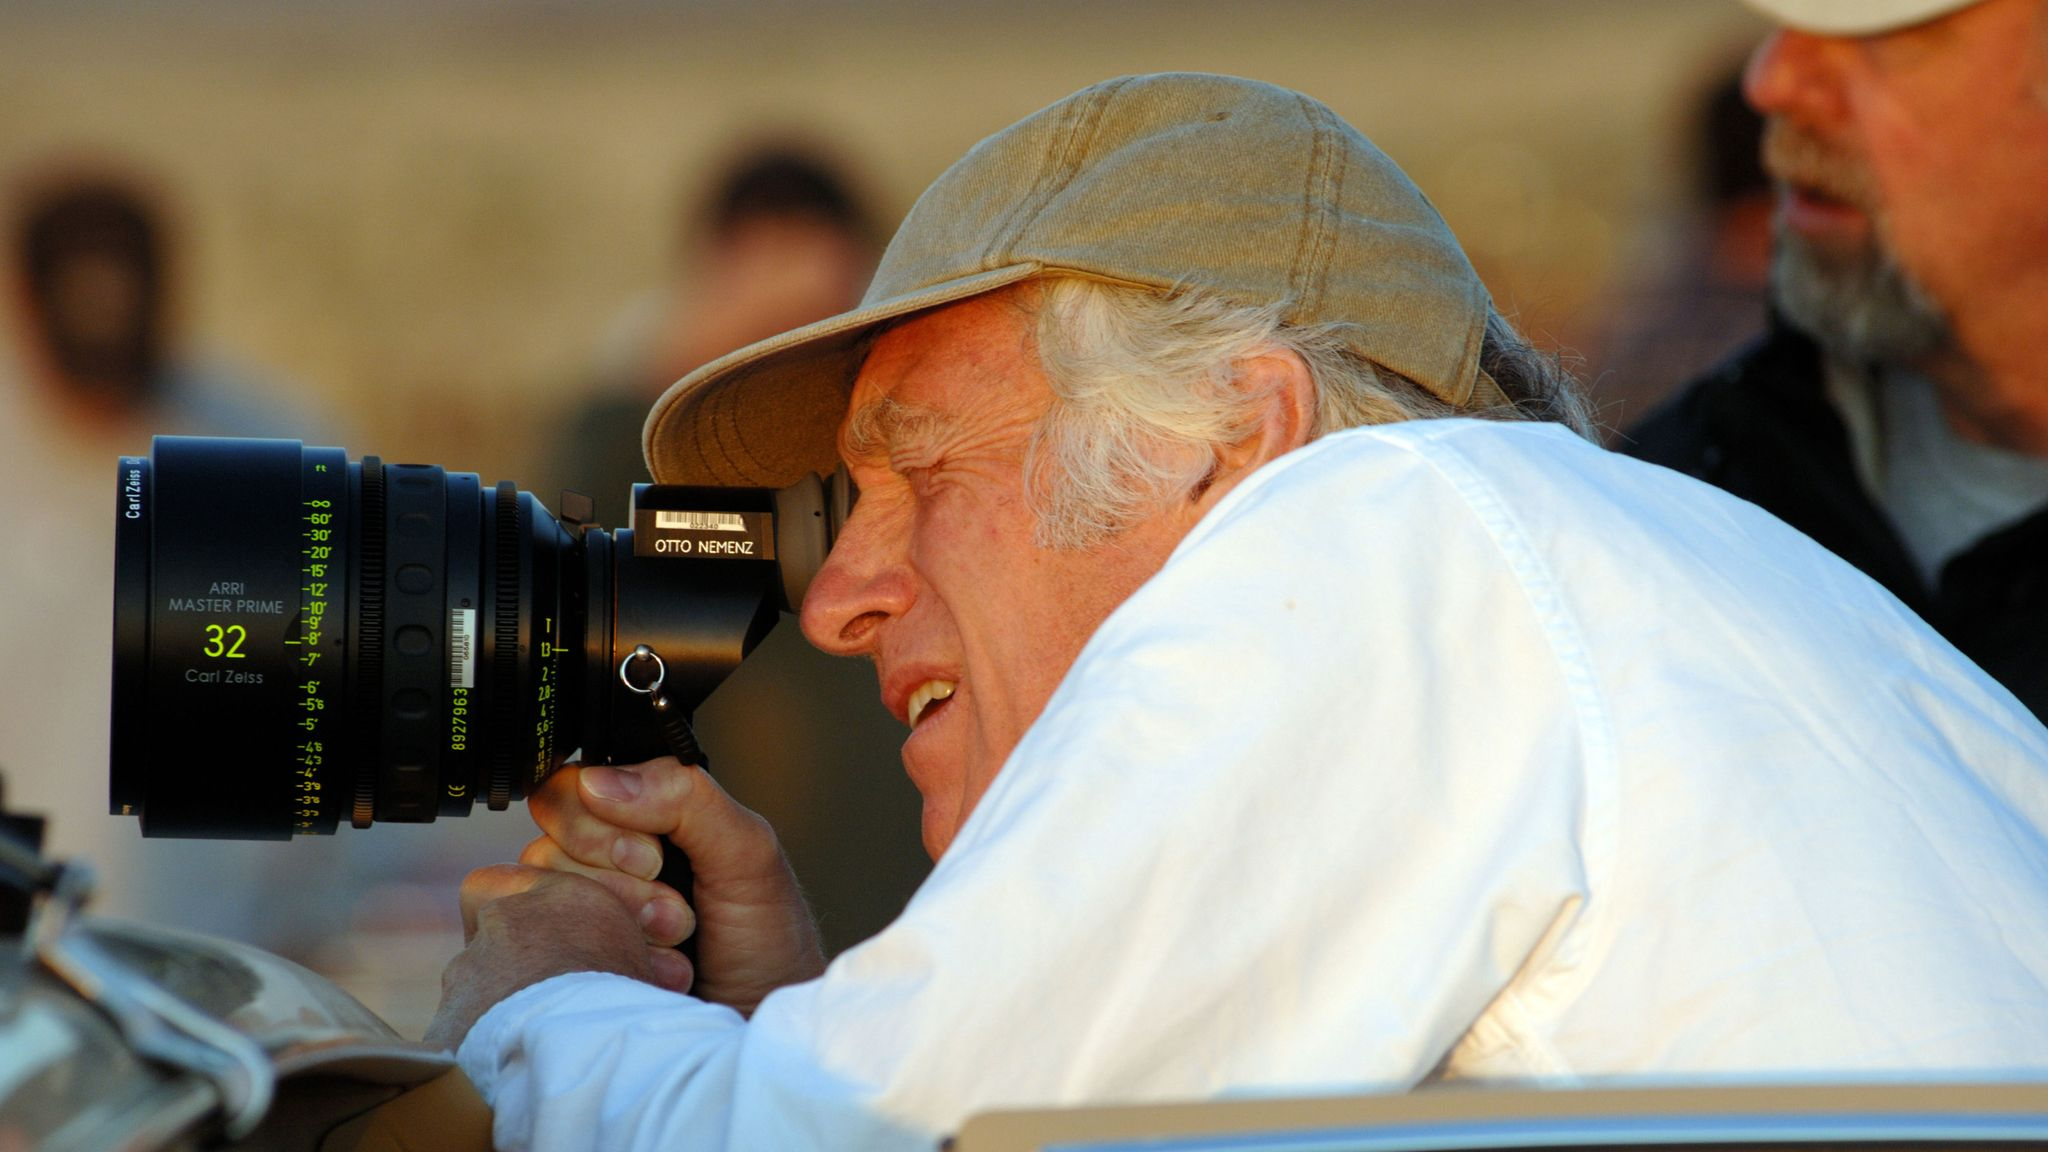 Roger Deakins: The Brit who is due an Oscar | Ents & Arts